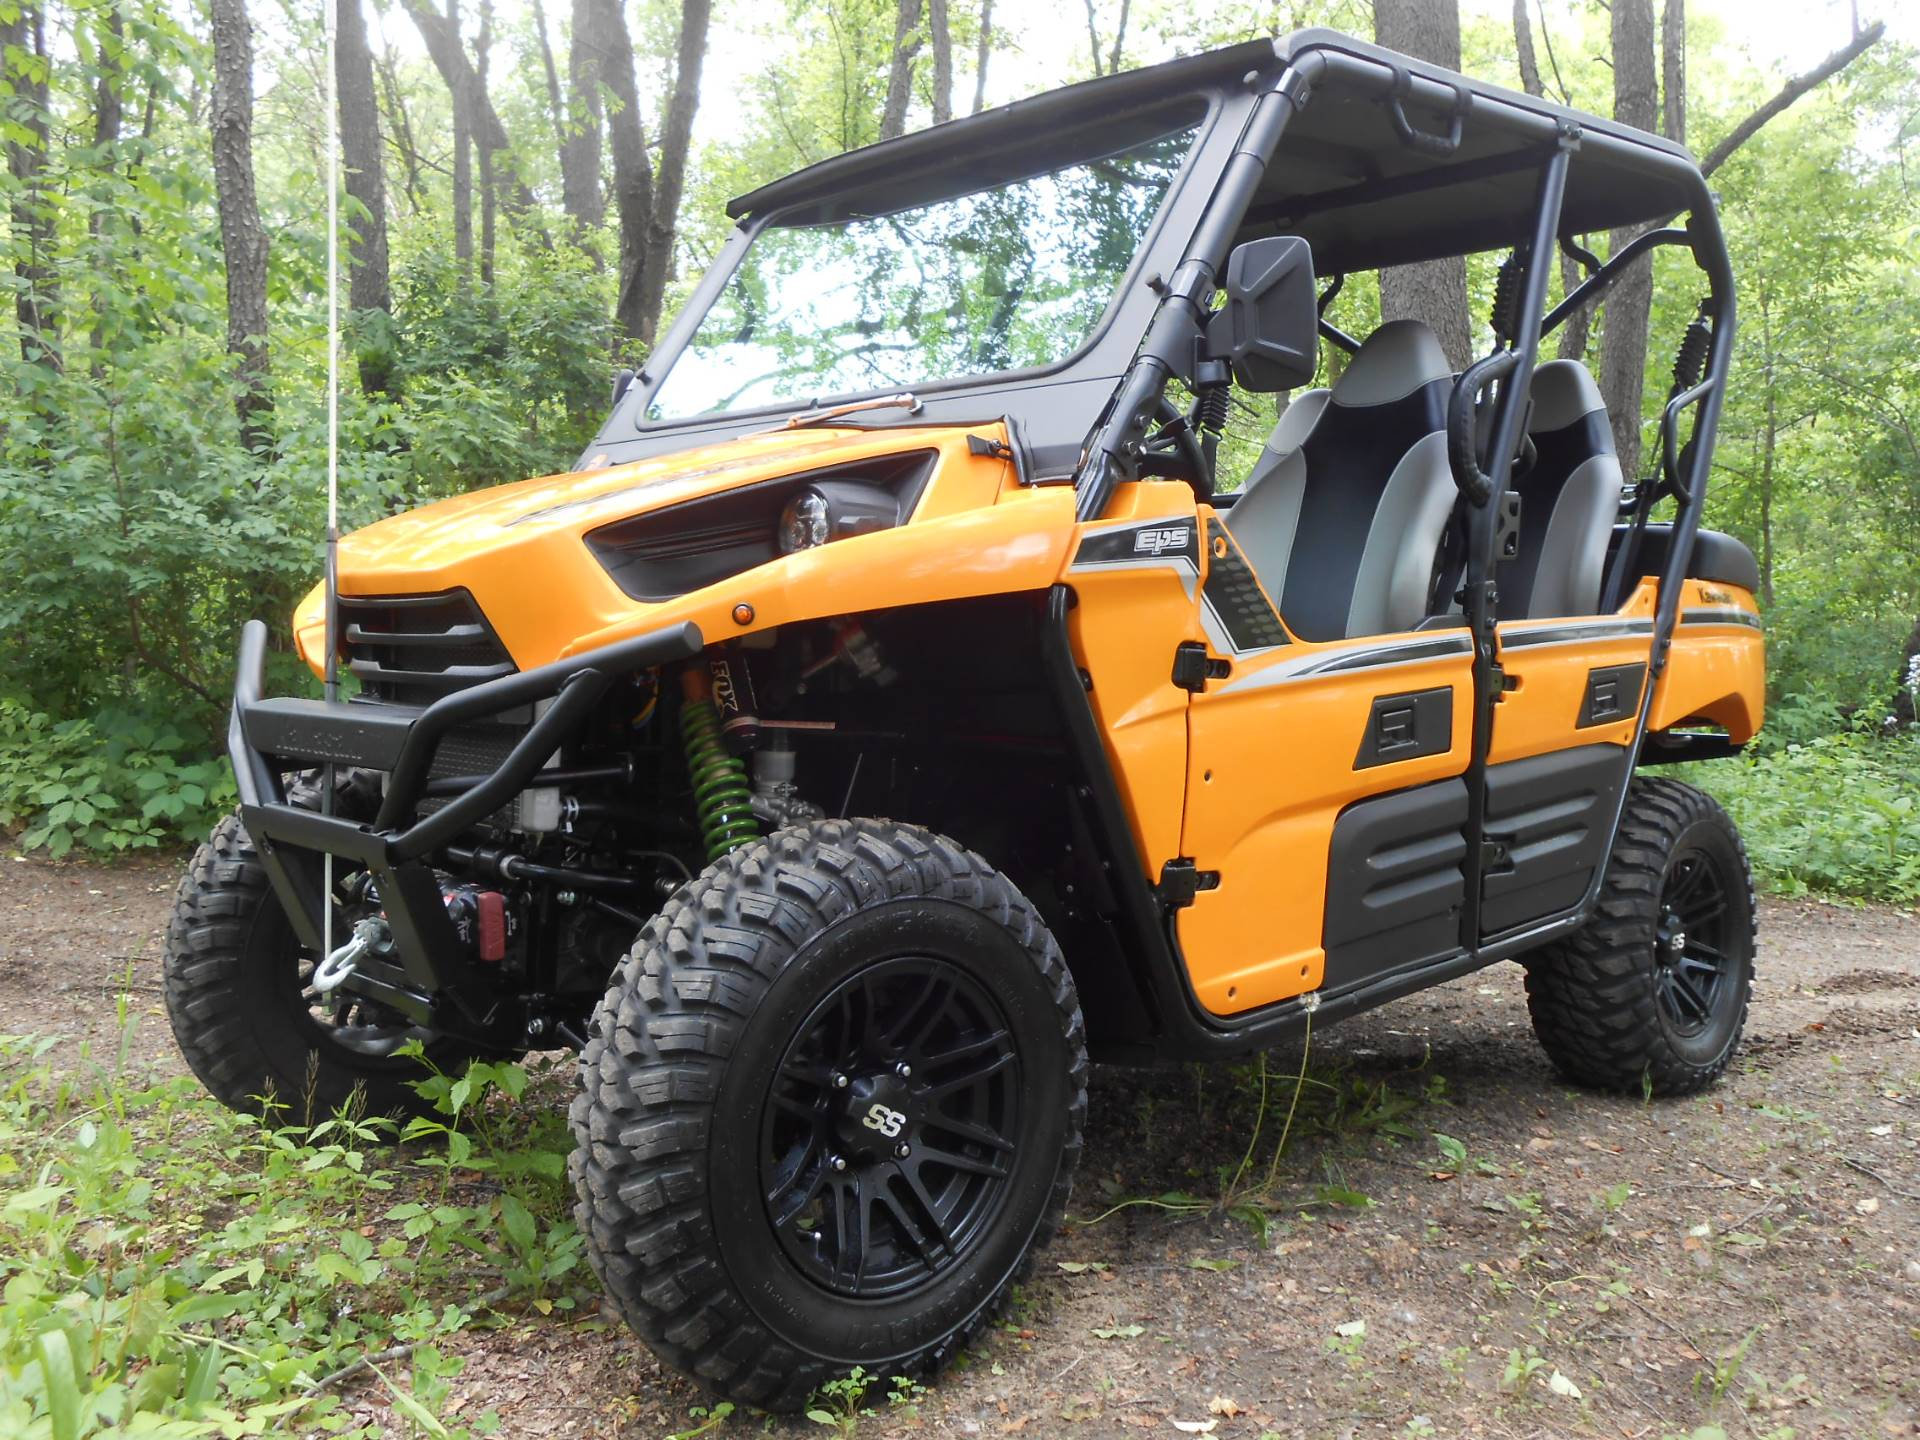 2013 Kawasaki Teryx4™ 750 4x4 EPS LE in Howell, Michigan - Photo 19